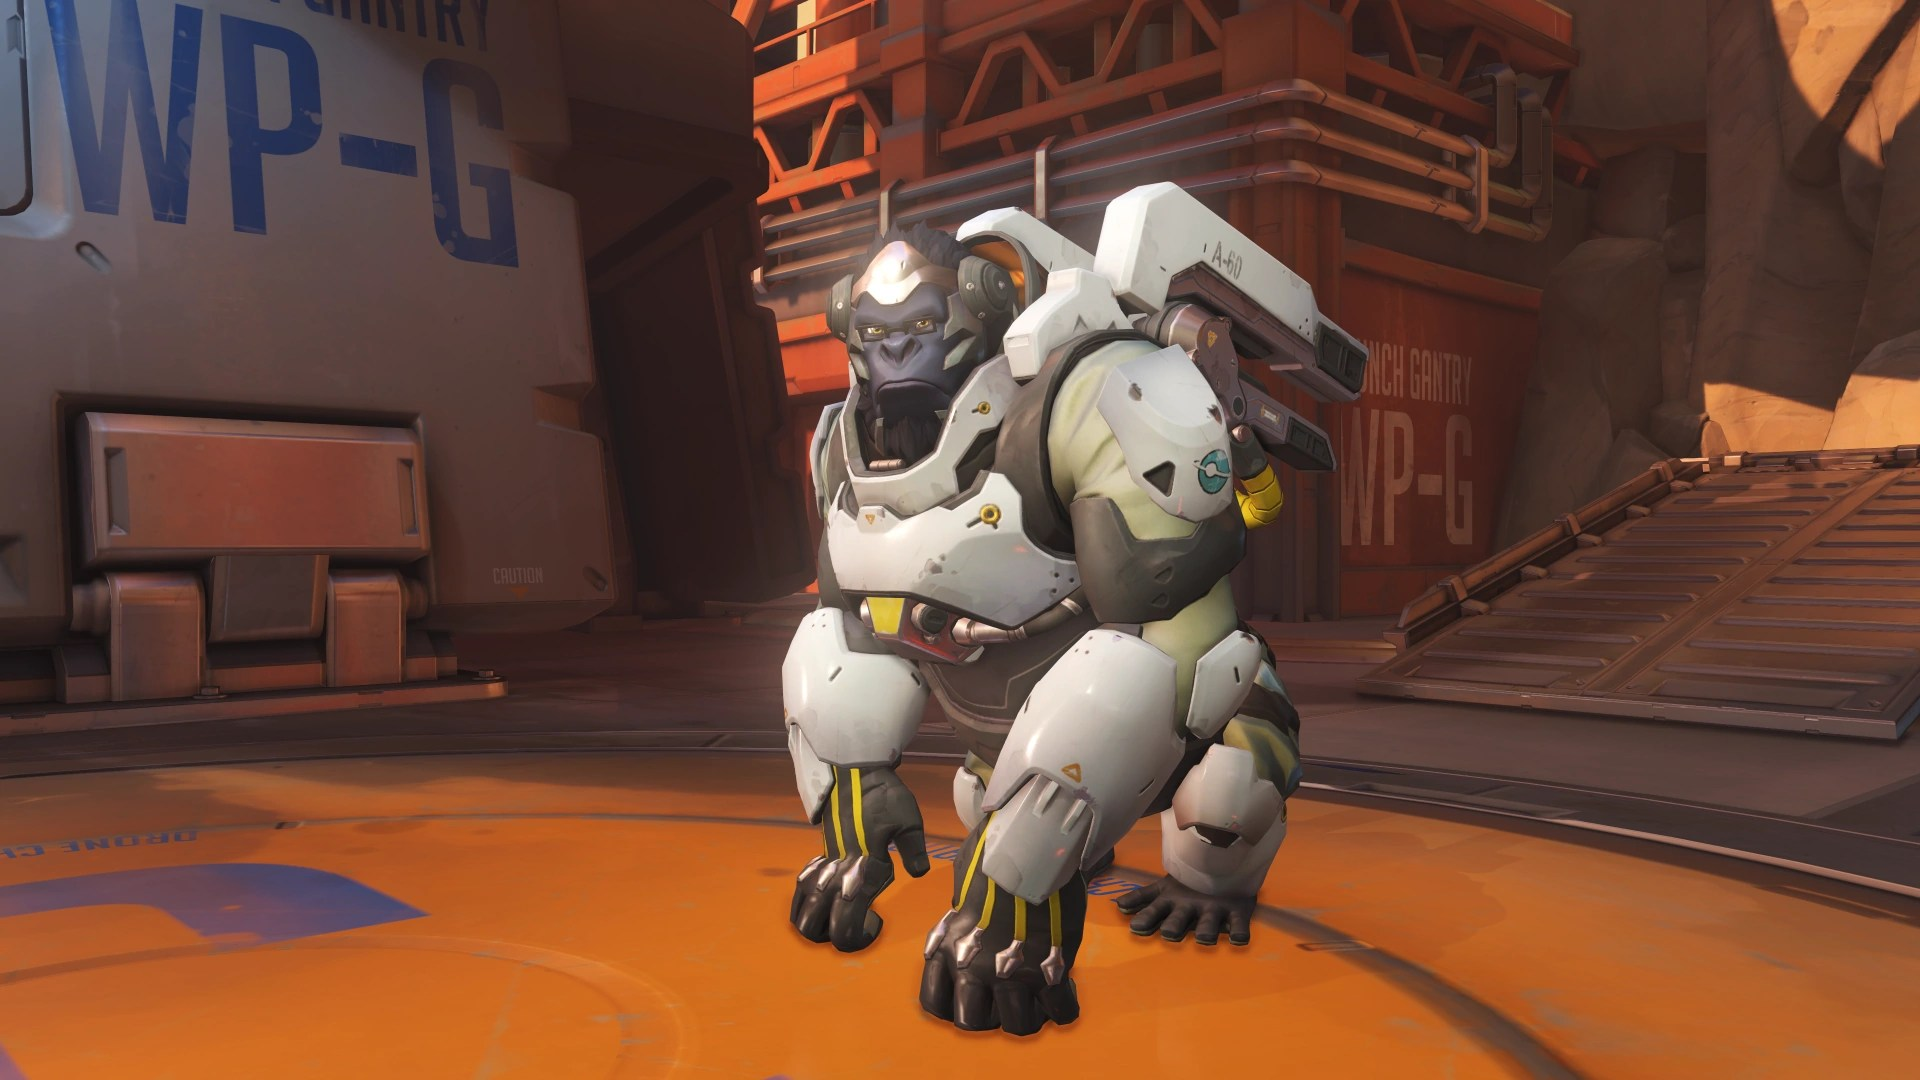 WinstonSkins And Weapons Overwatch Wiki FANDOM Powered By Wikia